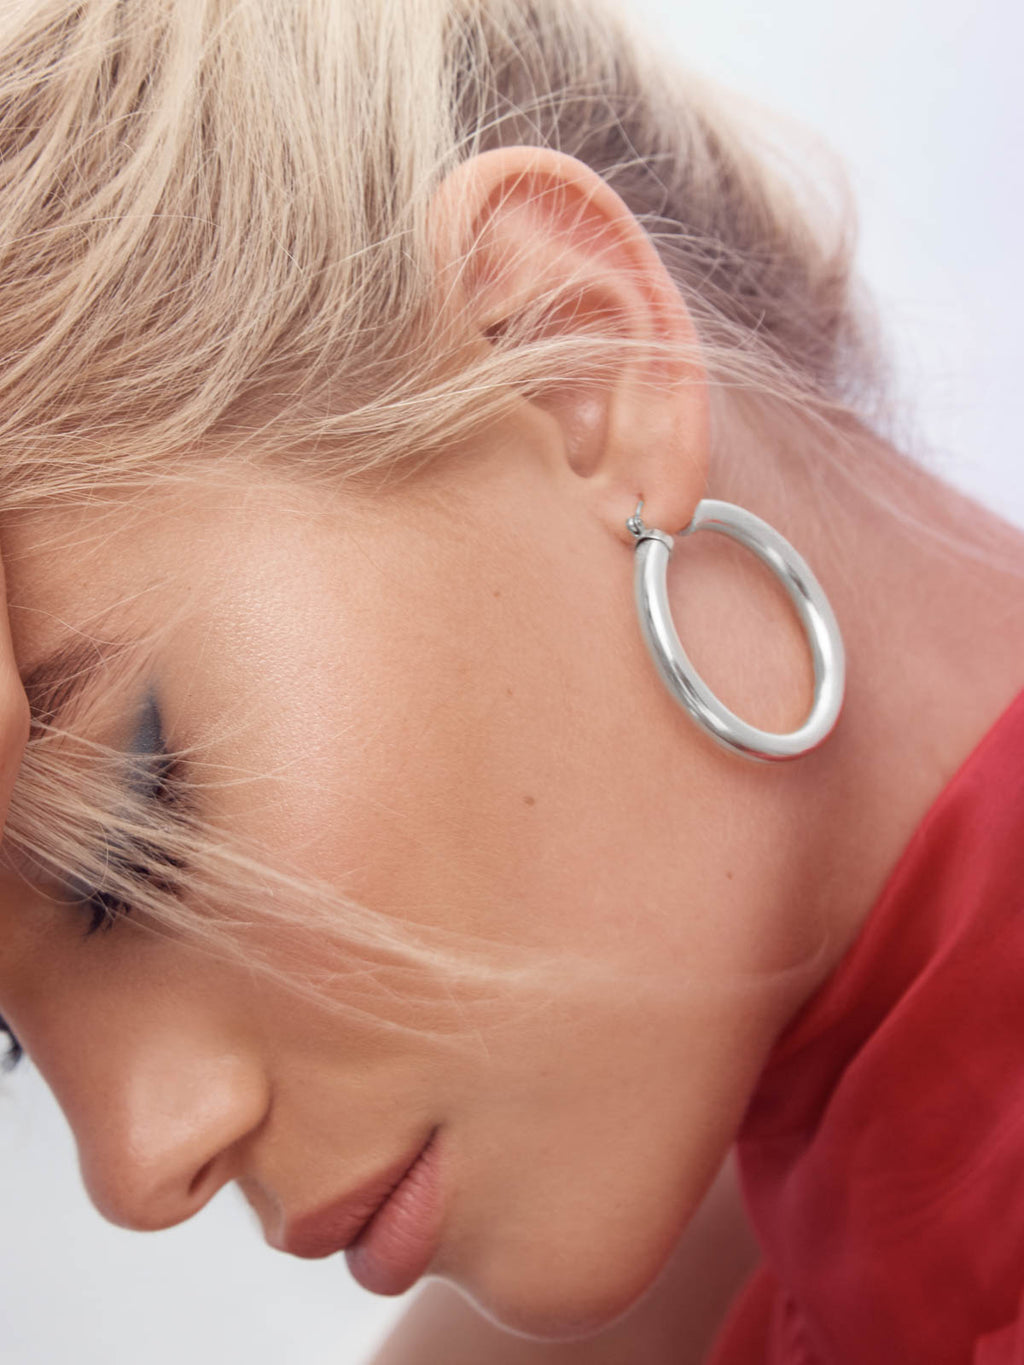 Sterling Silver Lightweight Hoops earrings by The Faint Hearted Jewelry